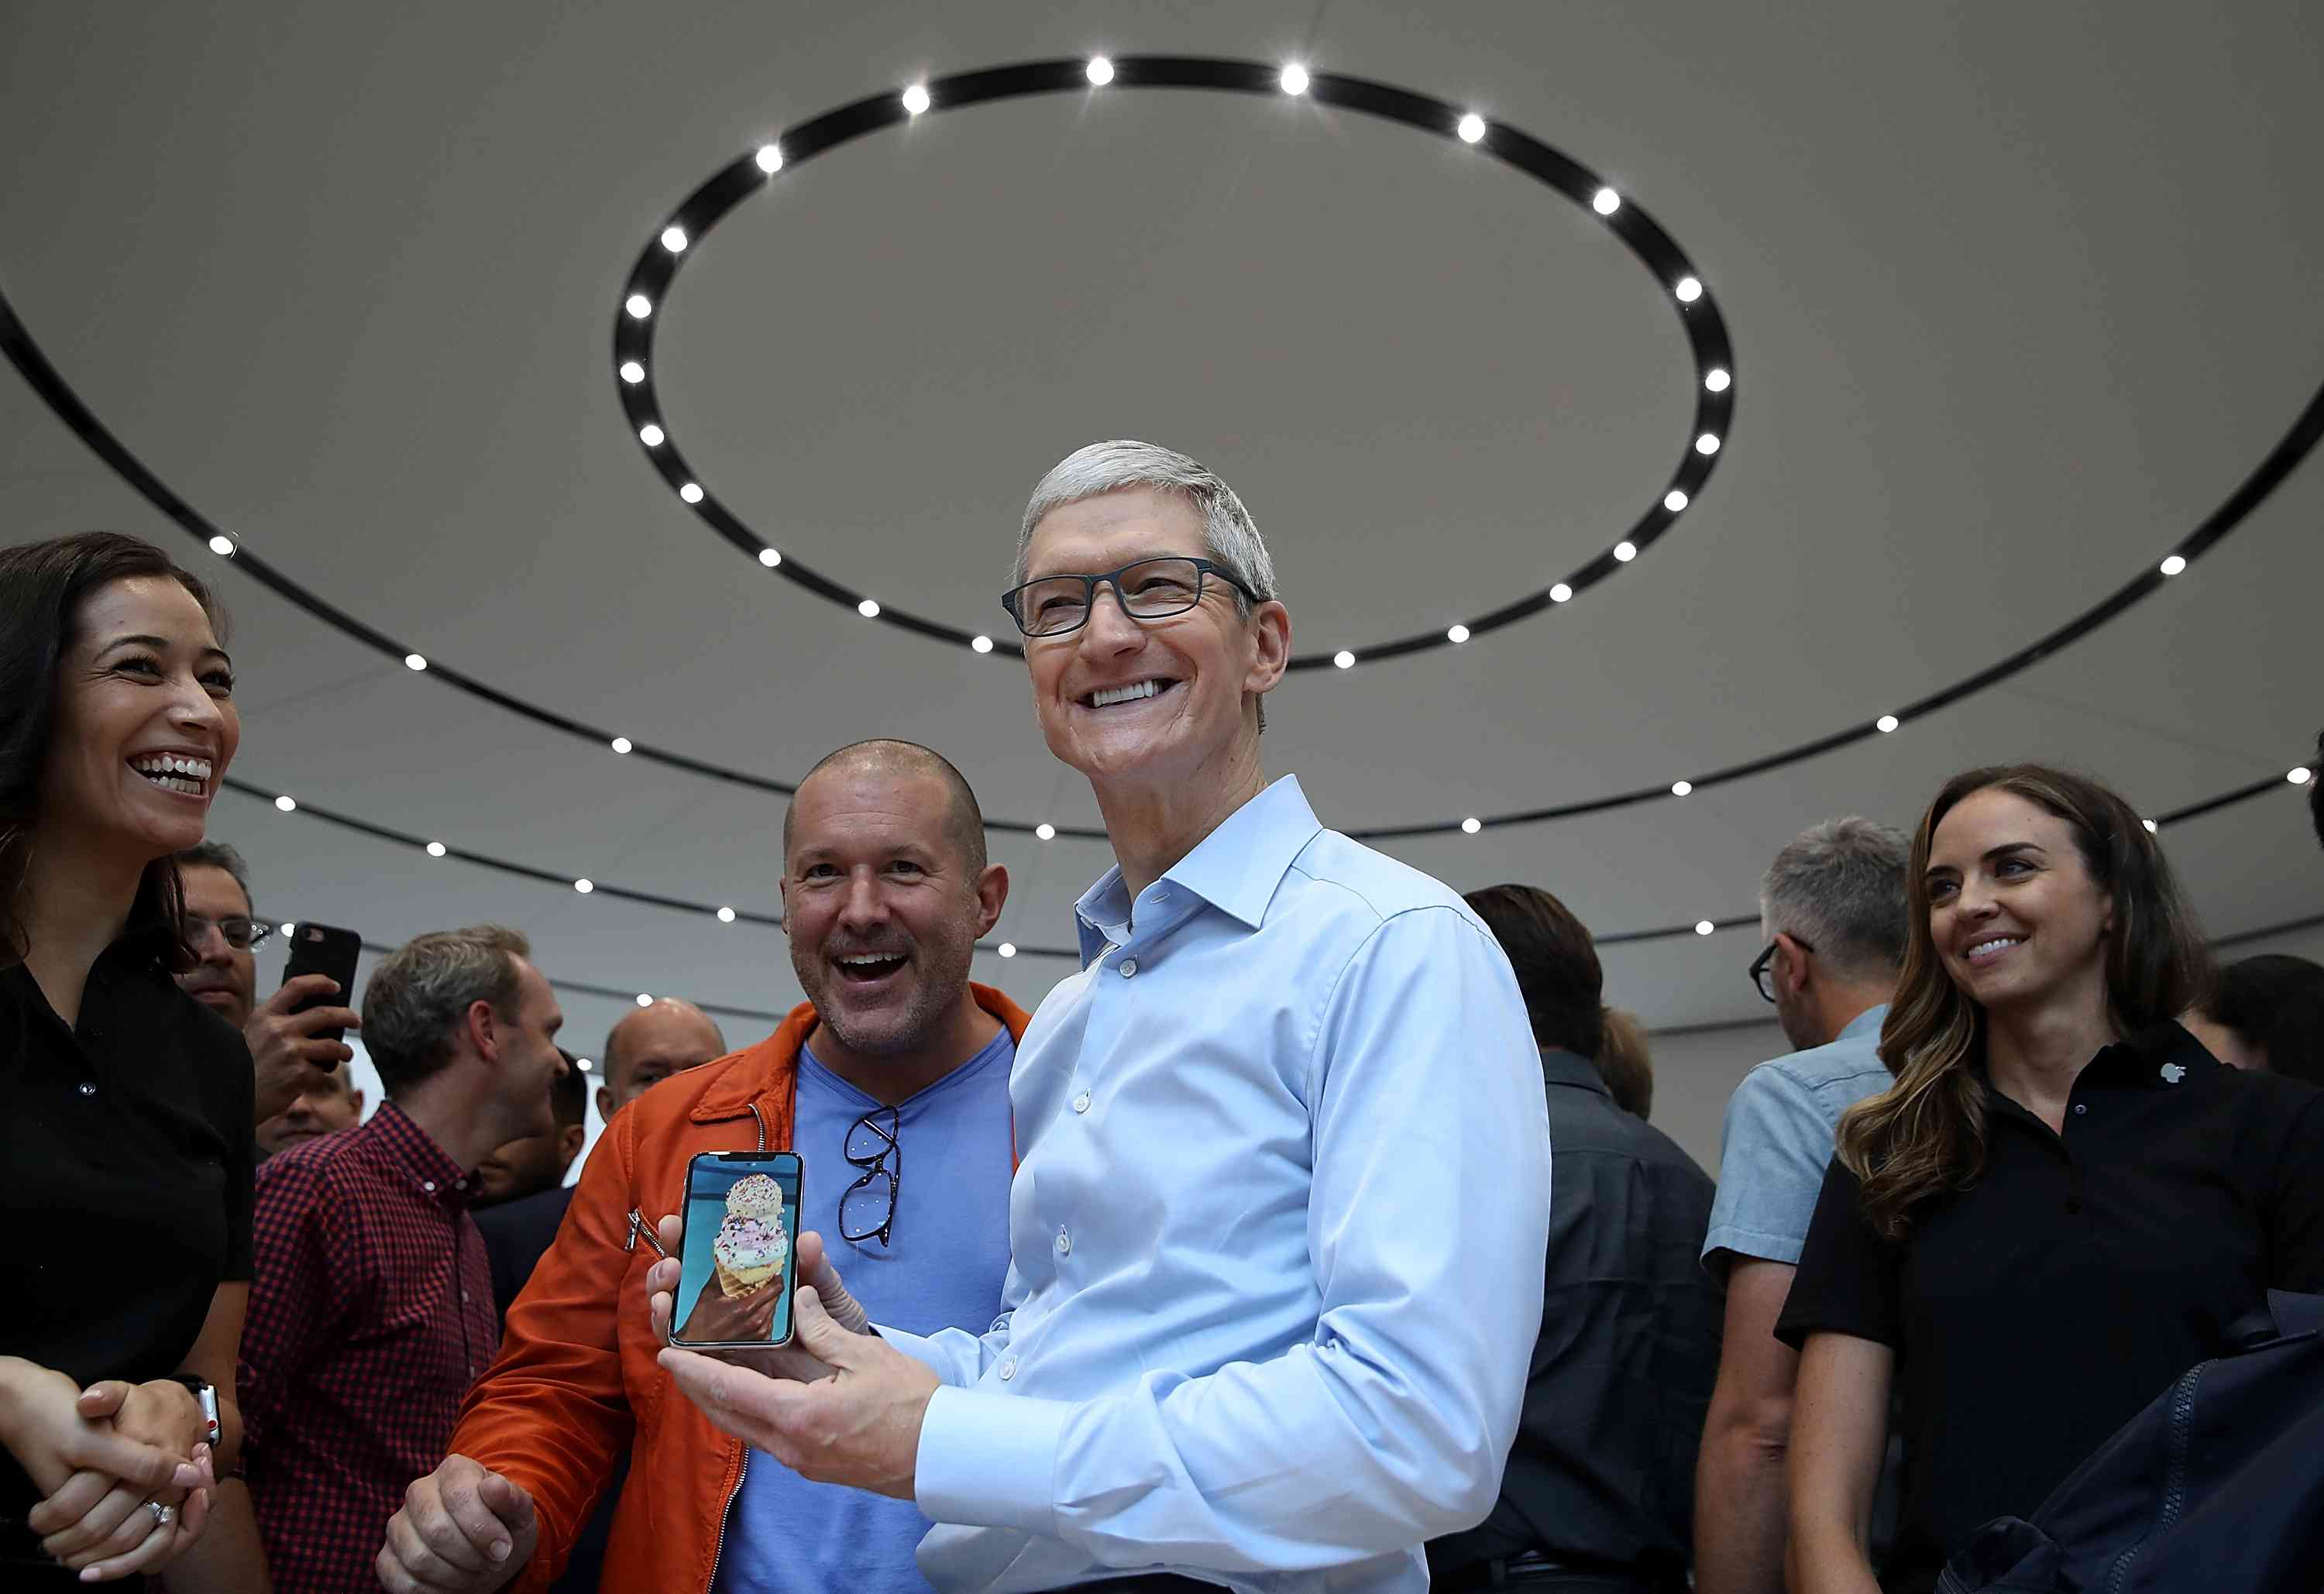 Tim Cook and Jony Ive show off the iPhone X.